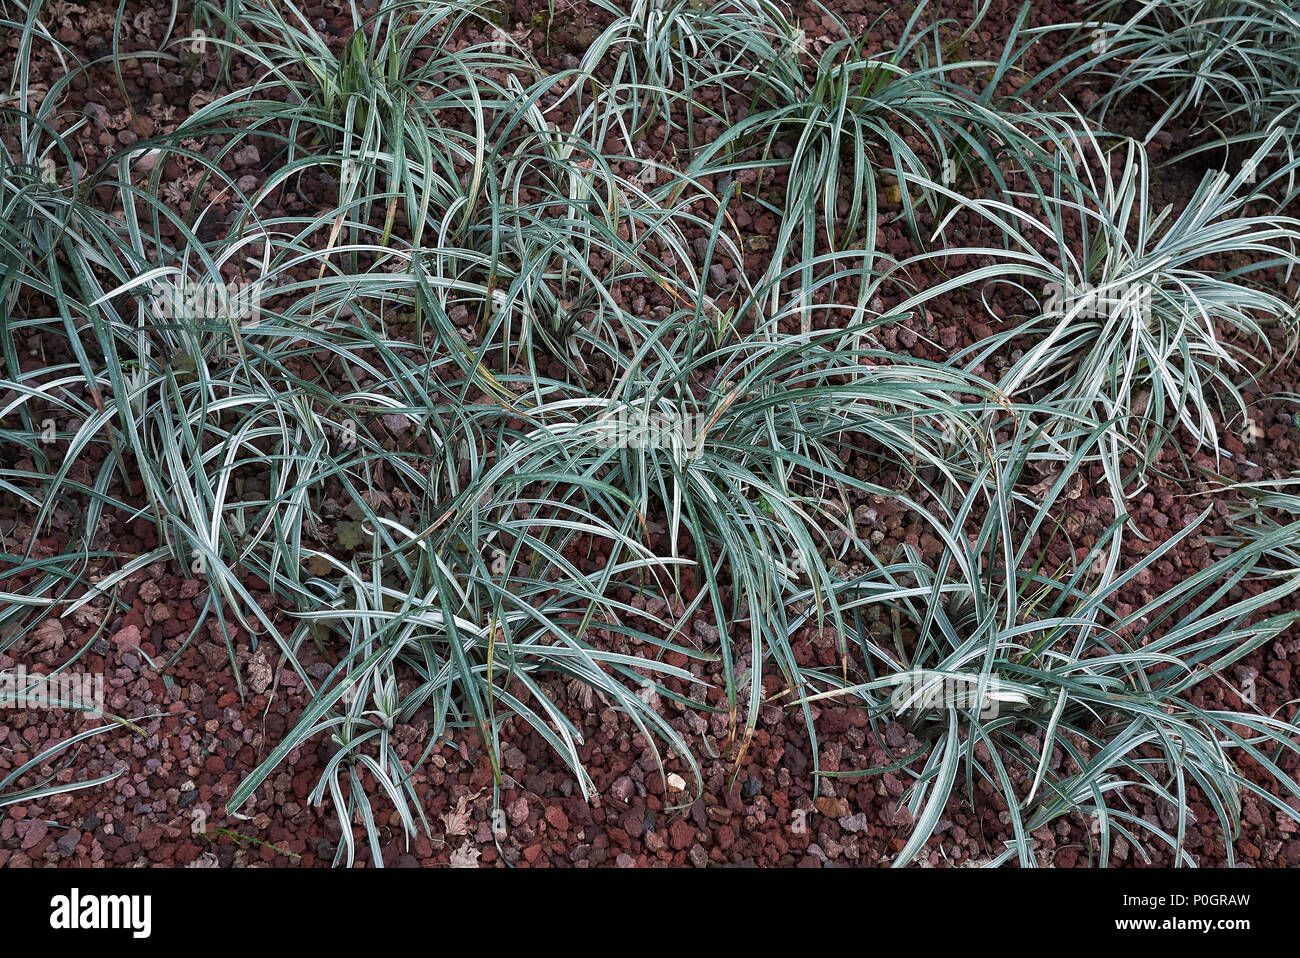 Carex everest in a garden - Stock Image